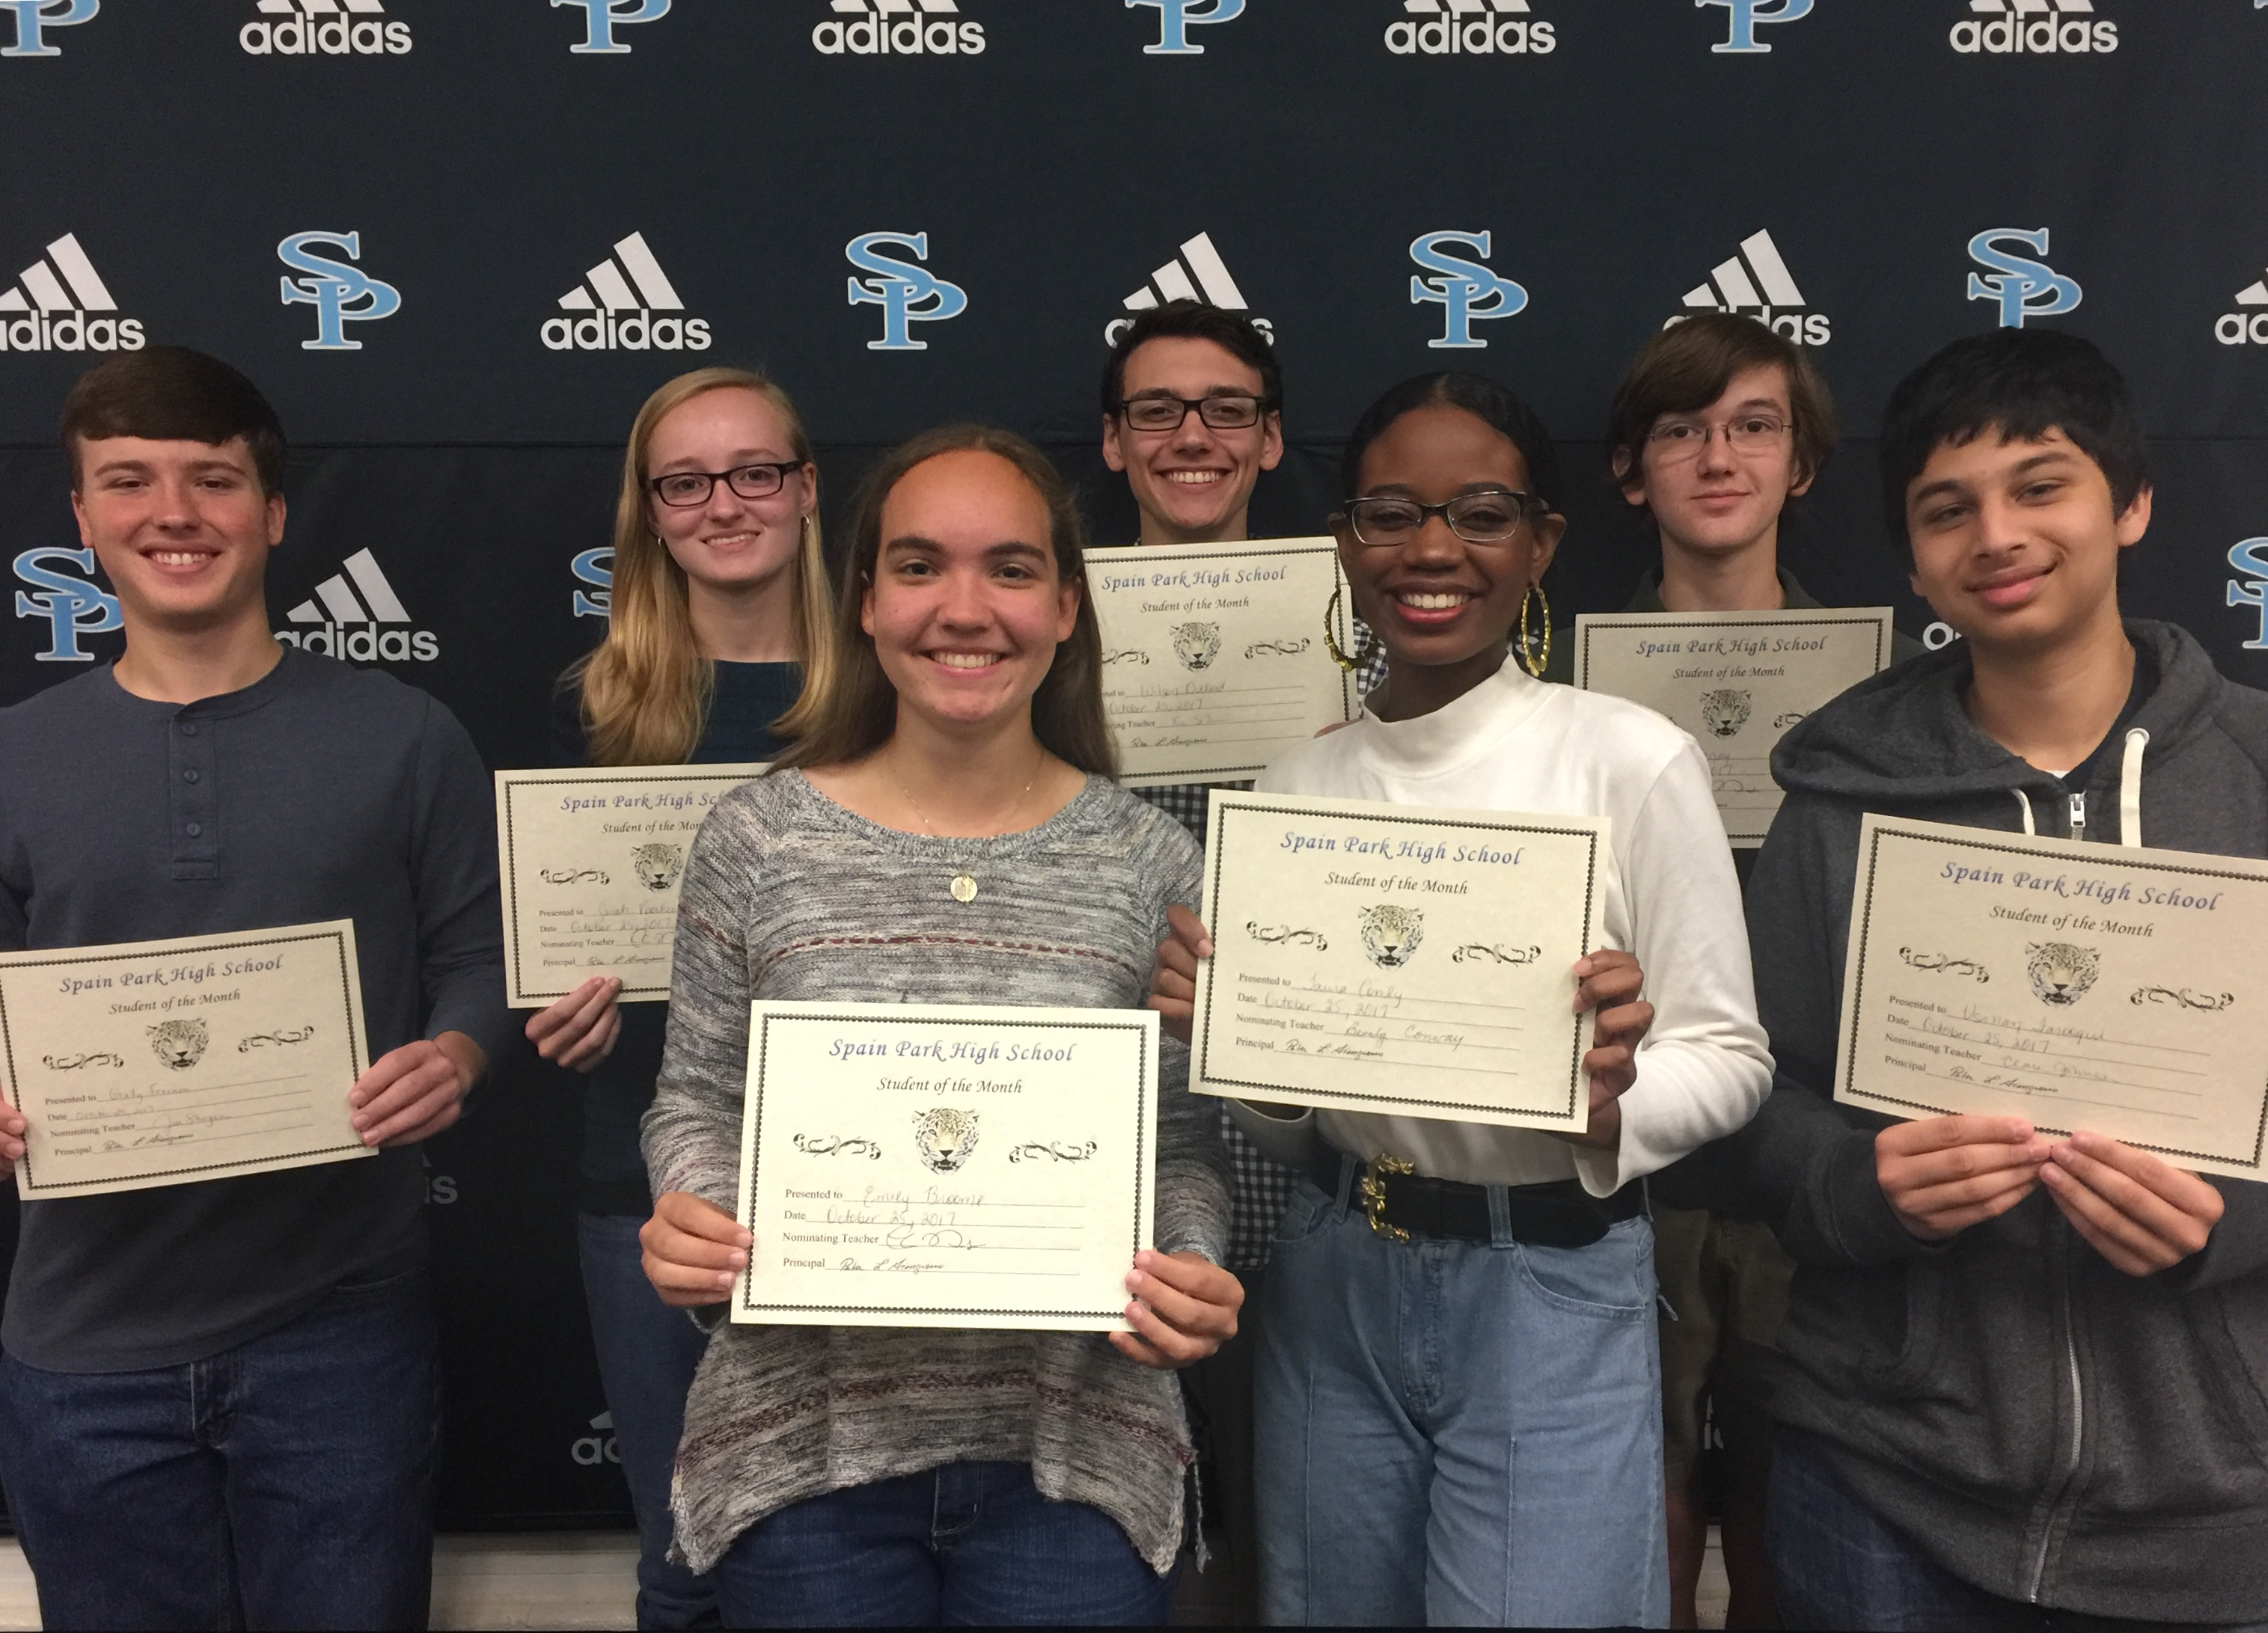 Back row left to right: Grady Freeman, Sarah Voorhees, Wilson Dillard, Alex Laney.   Front row left to right: Emily Broome, Taura Conley, Usman Farooqui